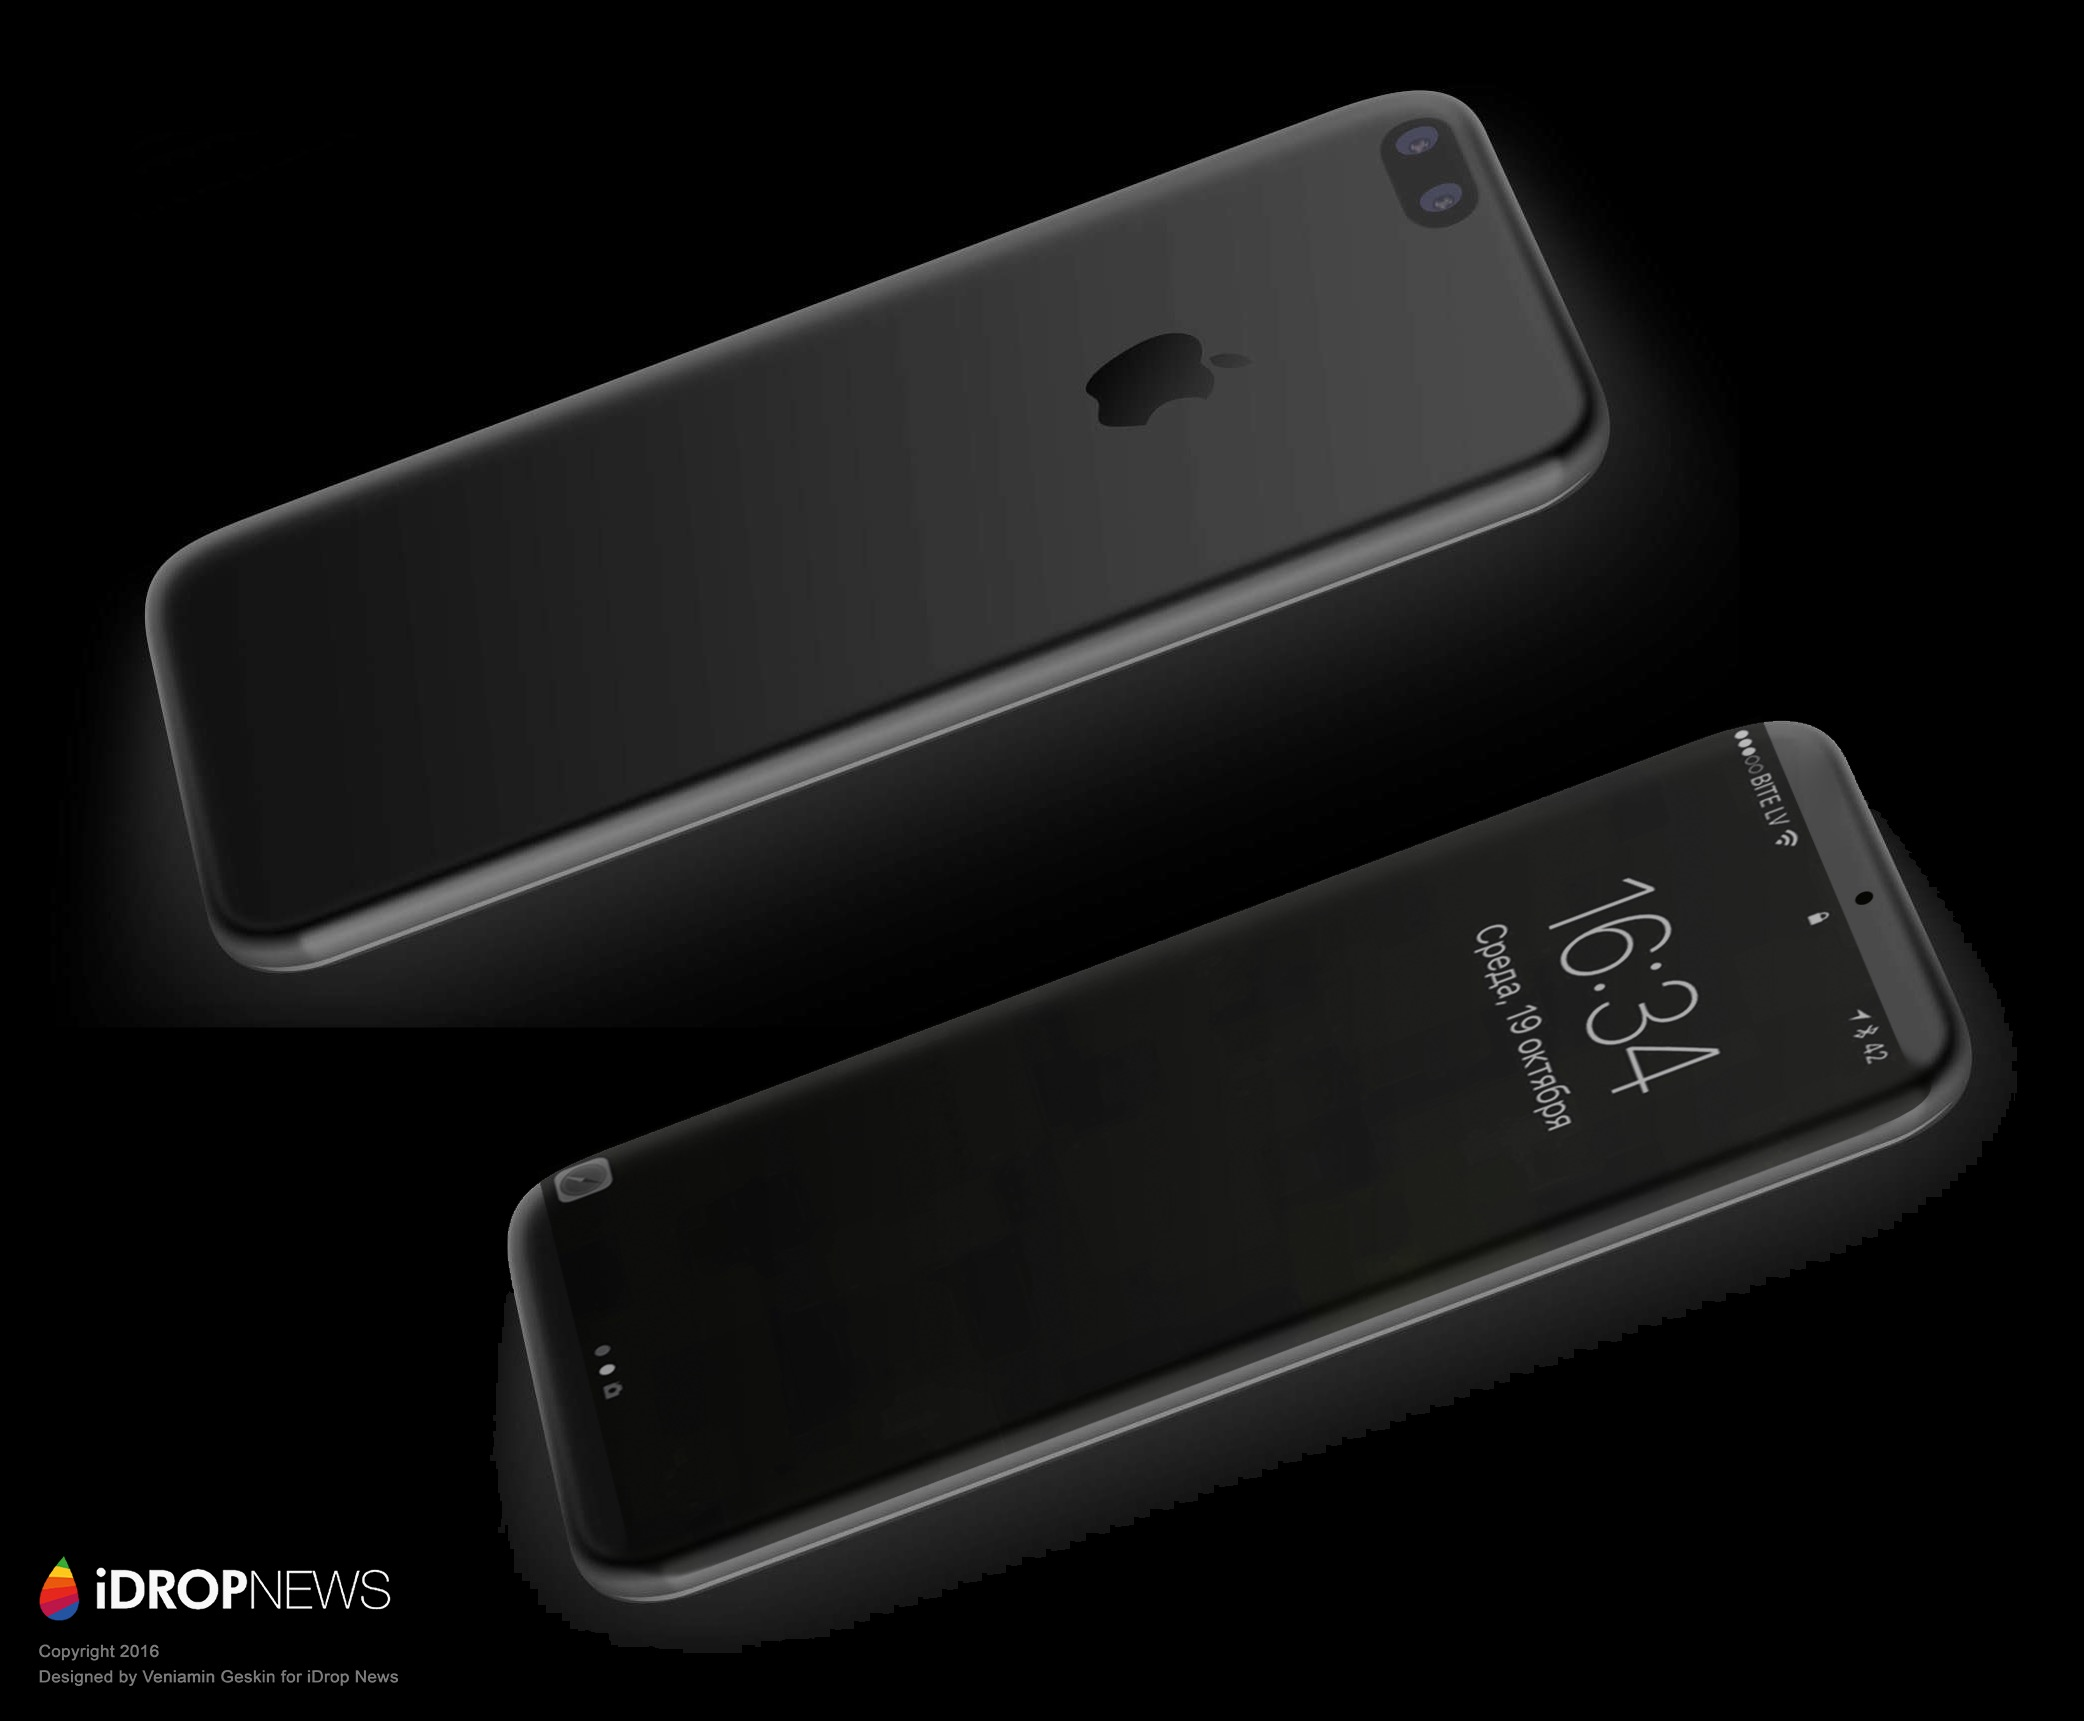 Apple iPhone 8 Concept / iDrop News